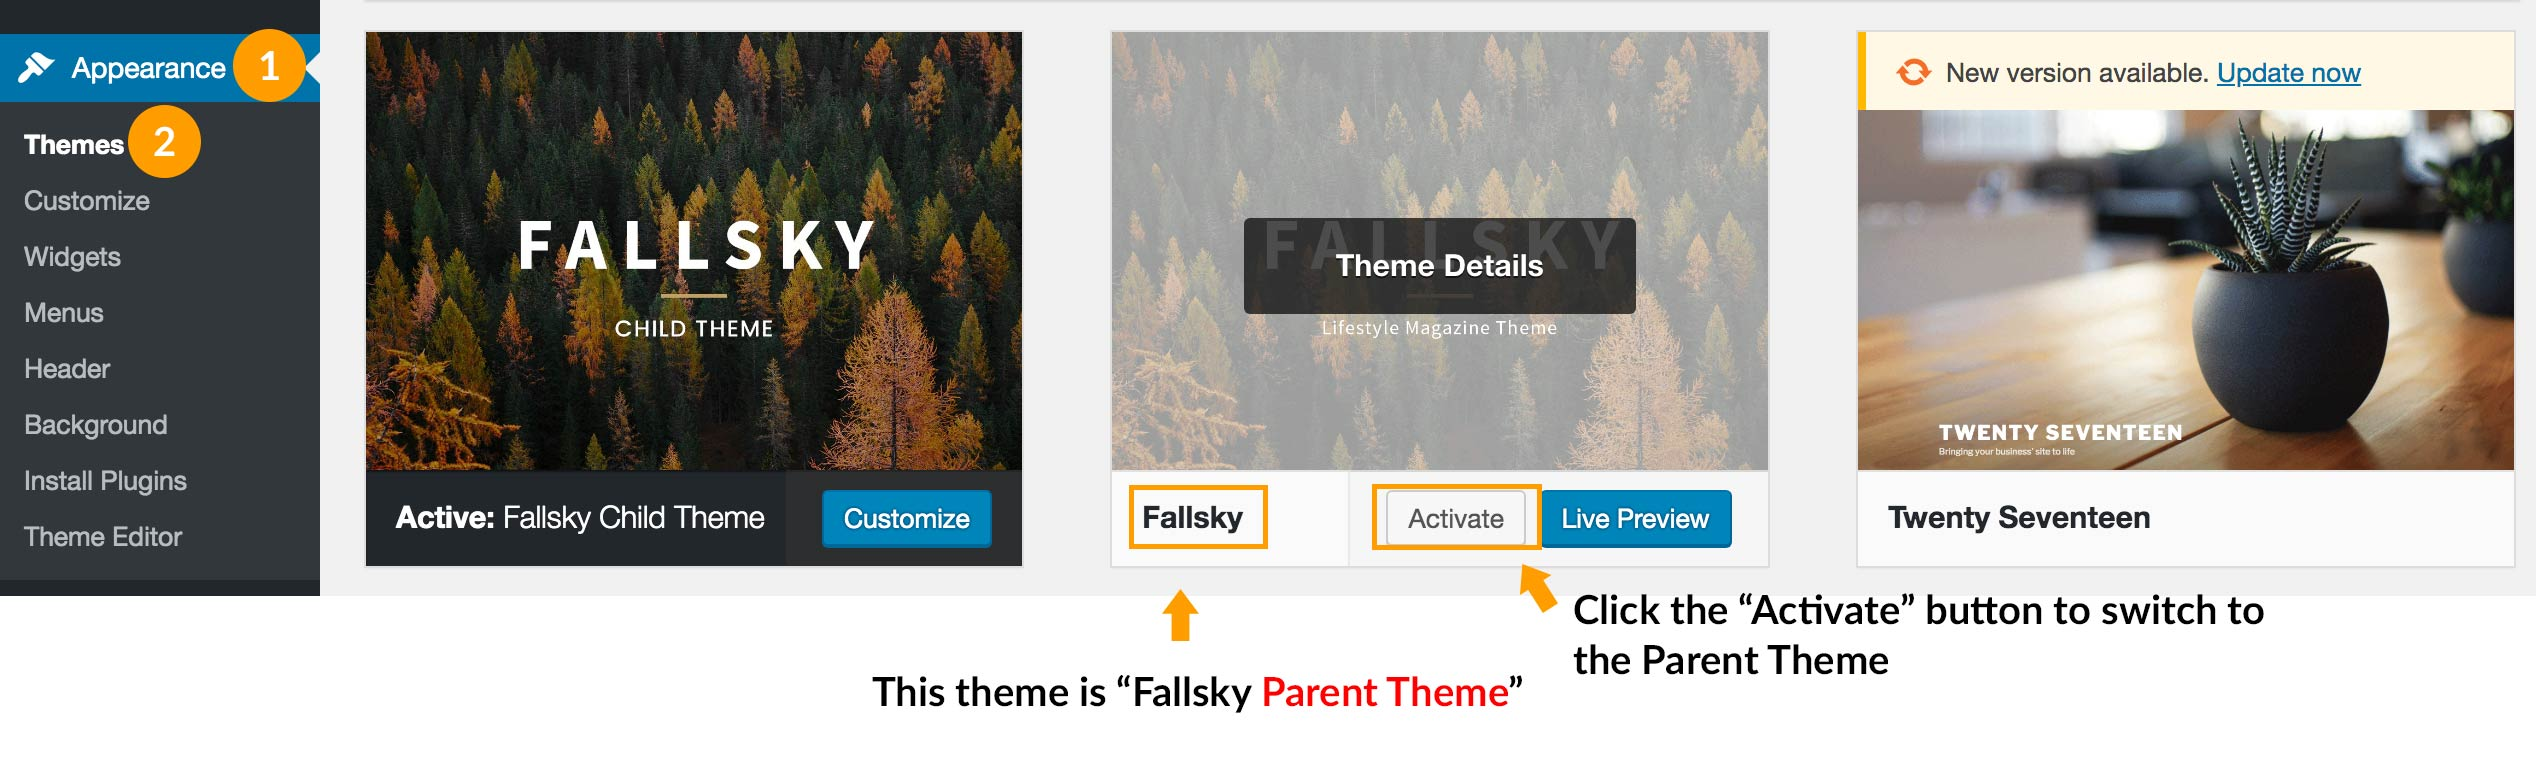 switch-to-parent-theme